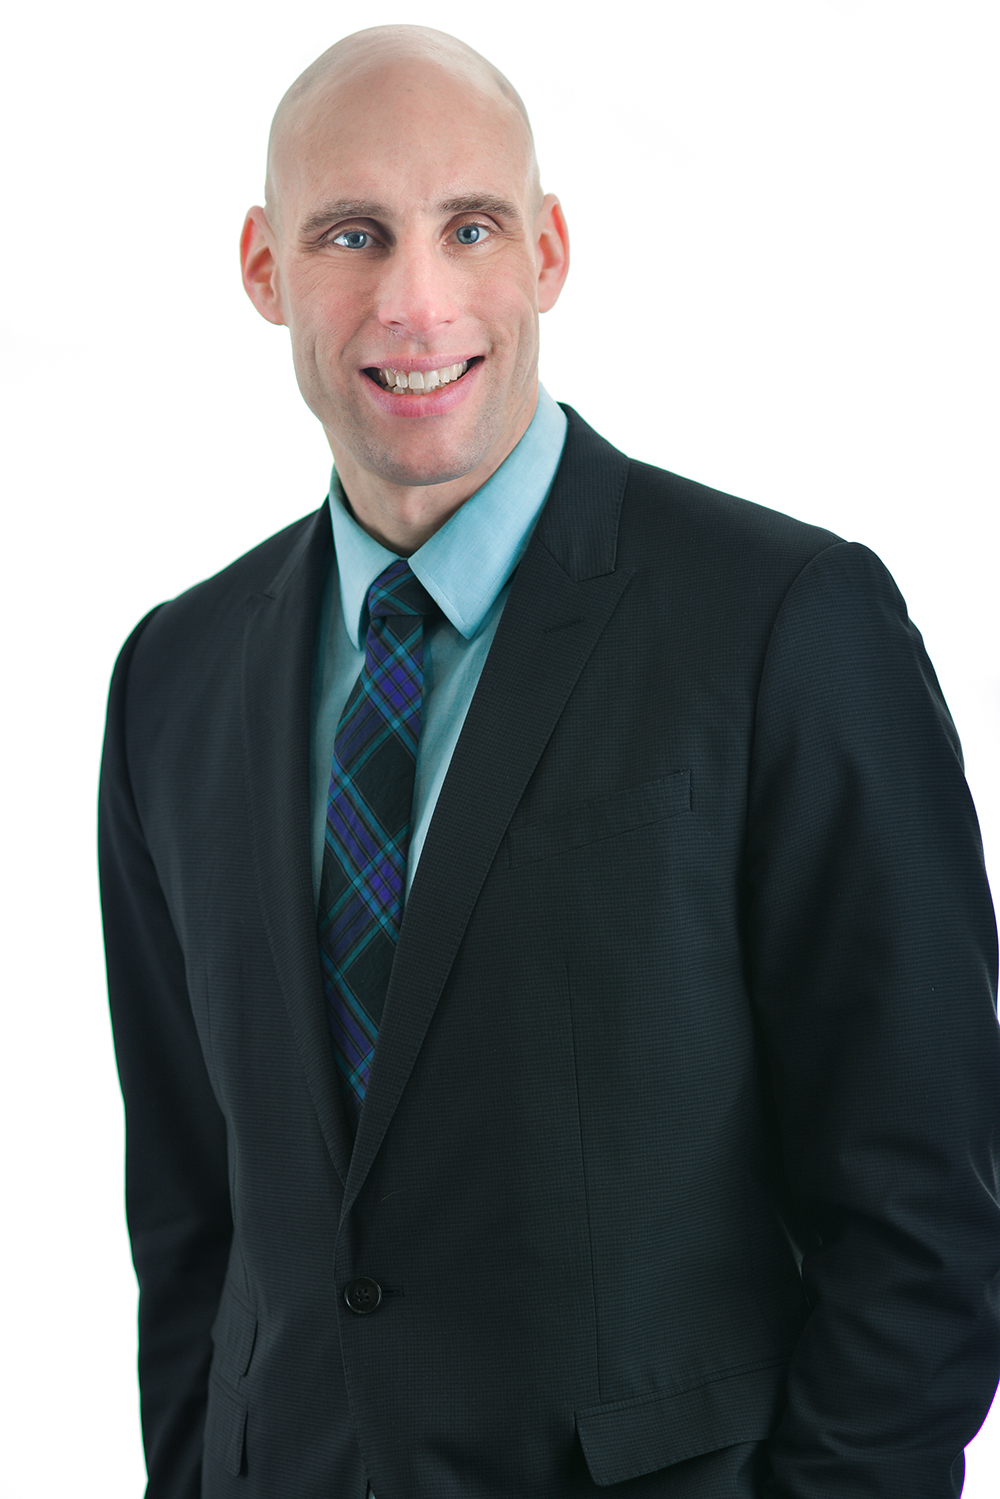 Jesse Berglund Joins the Firm